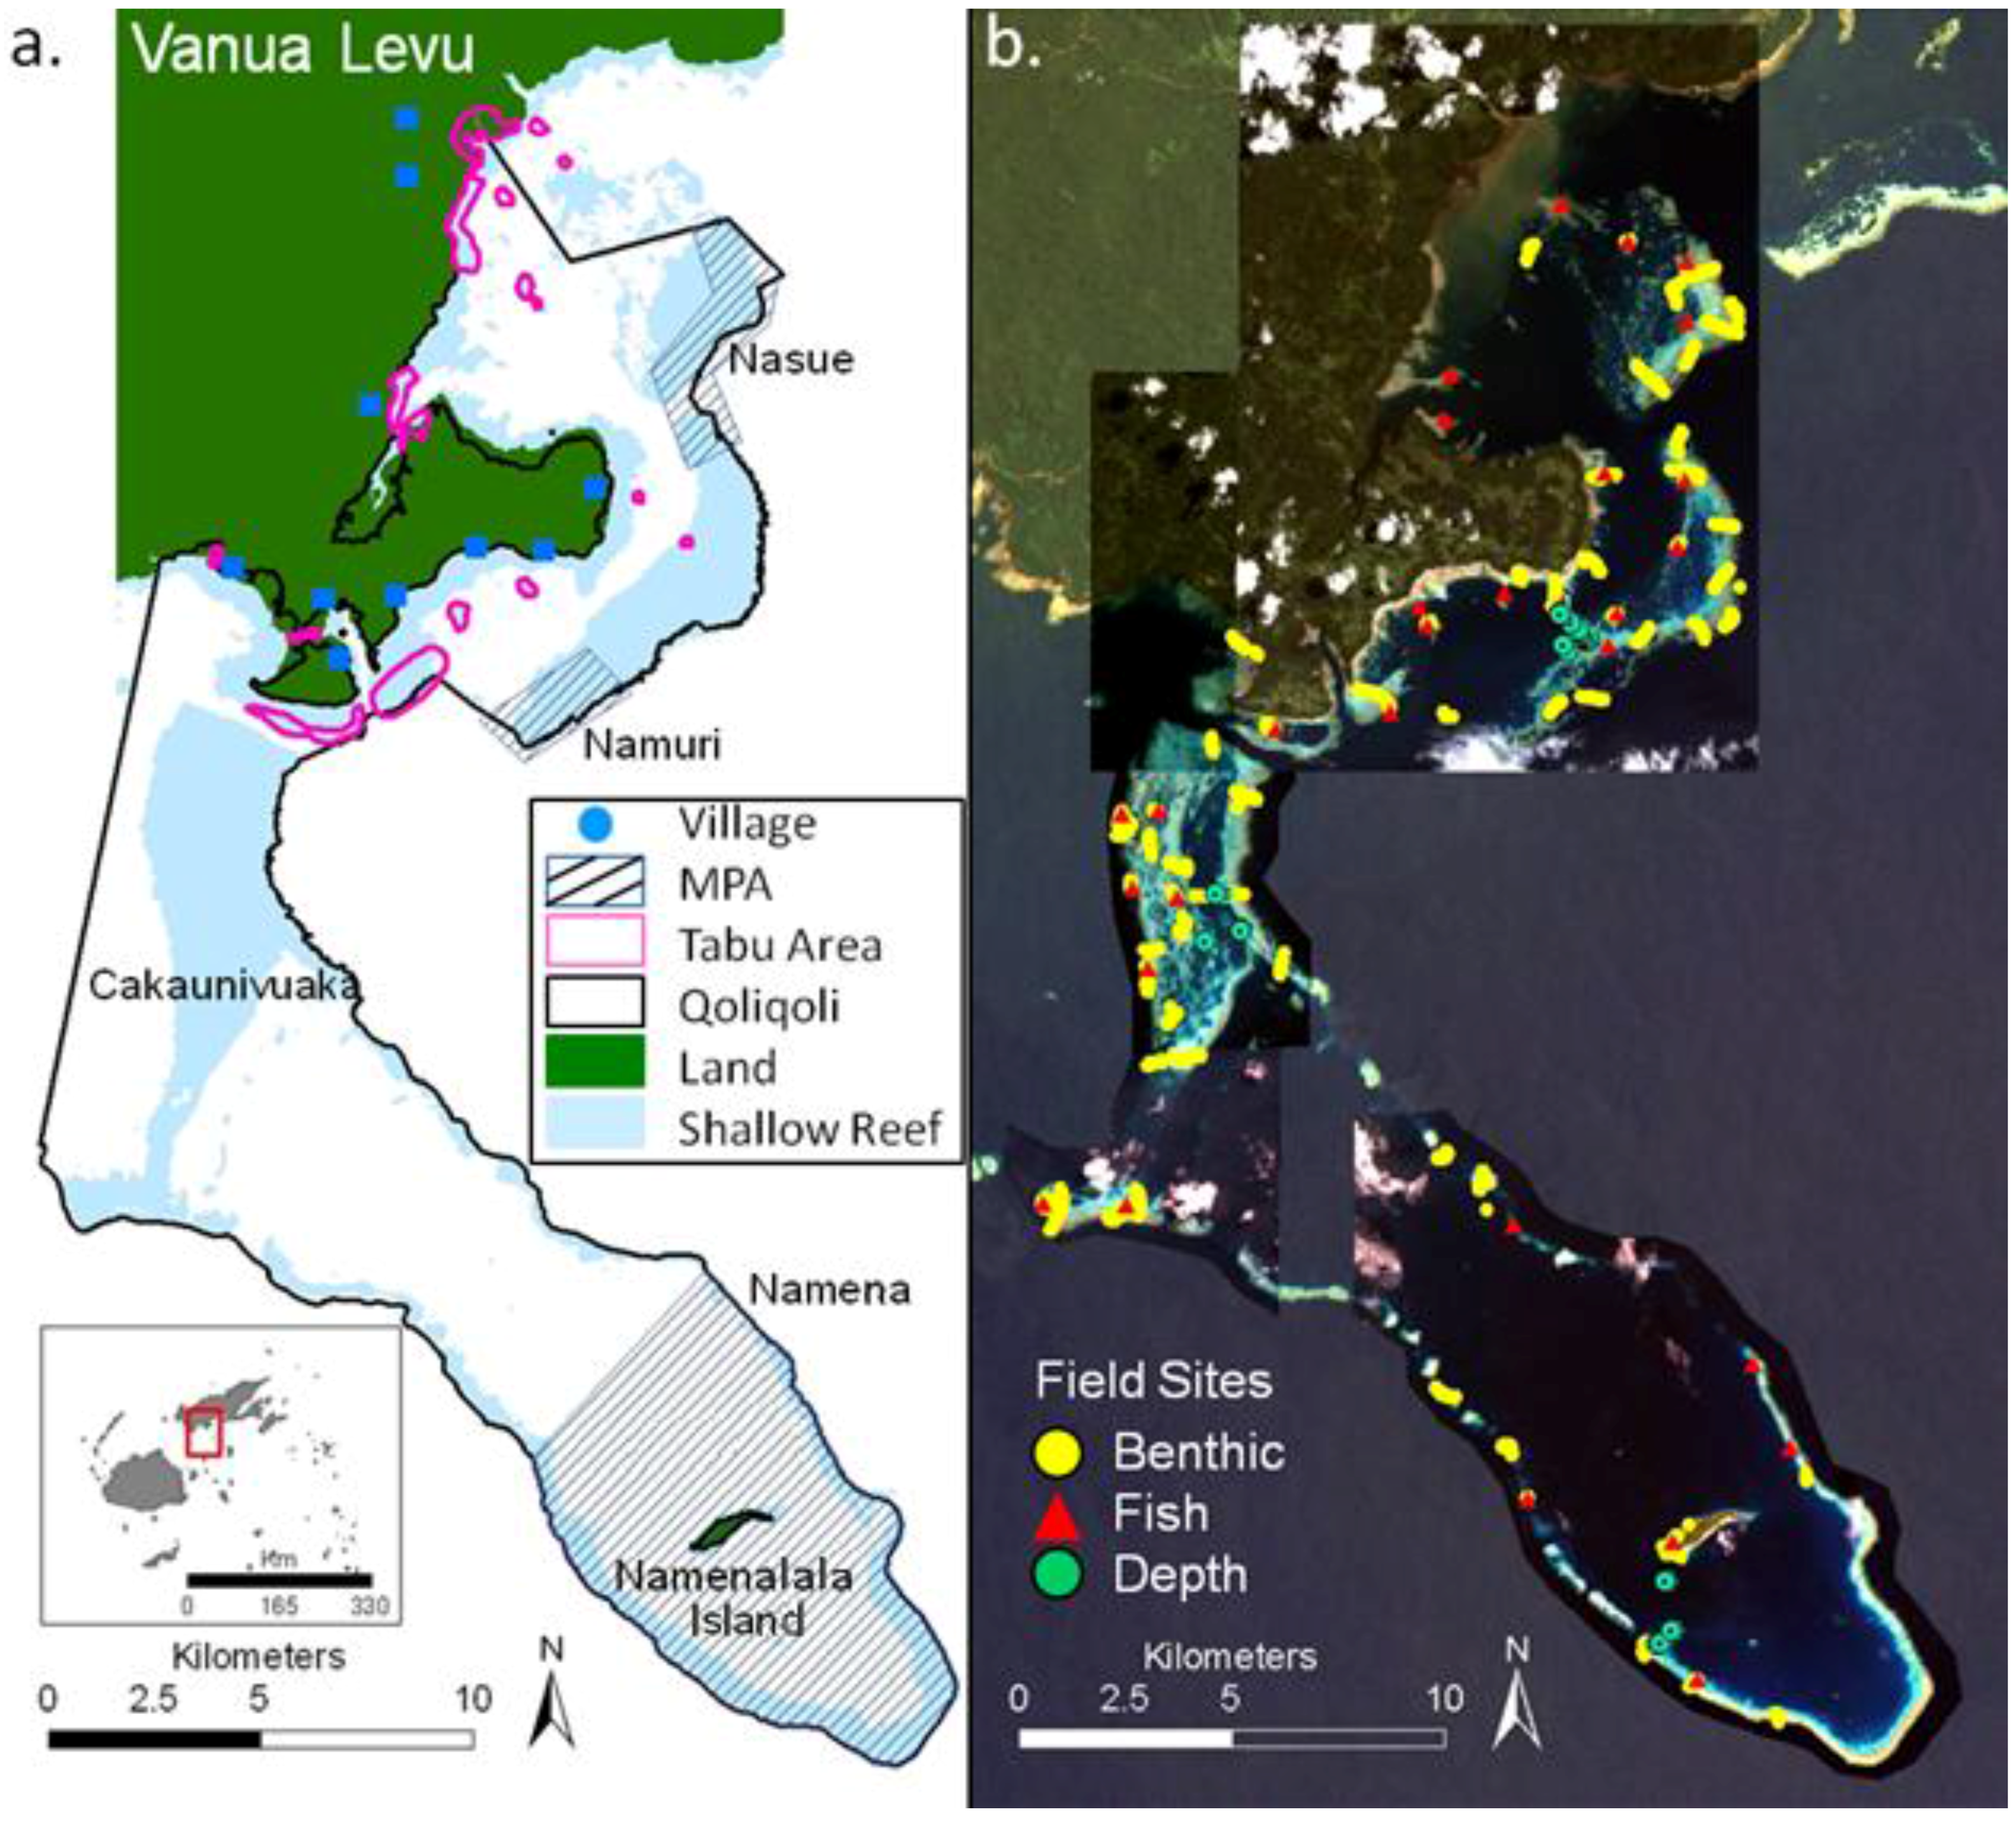 Remote Sensing Free Full Text Mapping Fish Community Variables By Integrating Field And Satellite Data Object Based Image Analysis And Modeling In A Traditional Fijian Fisheries Management Area Html